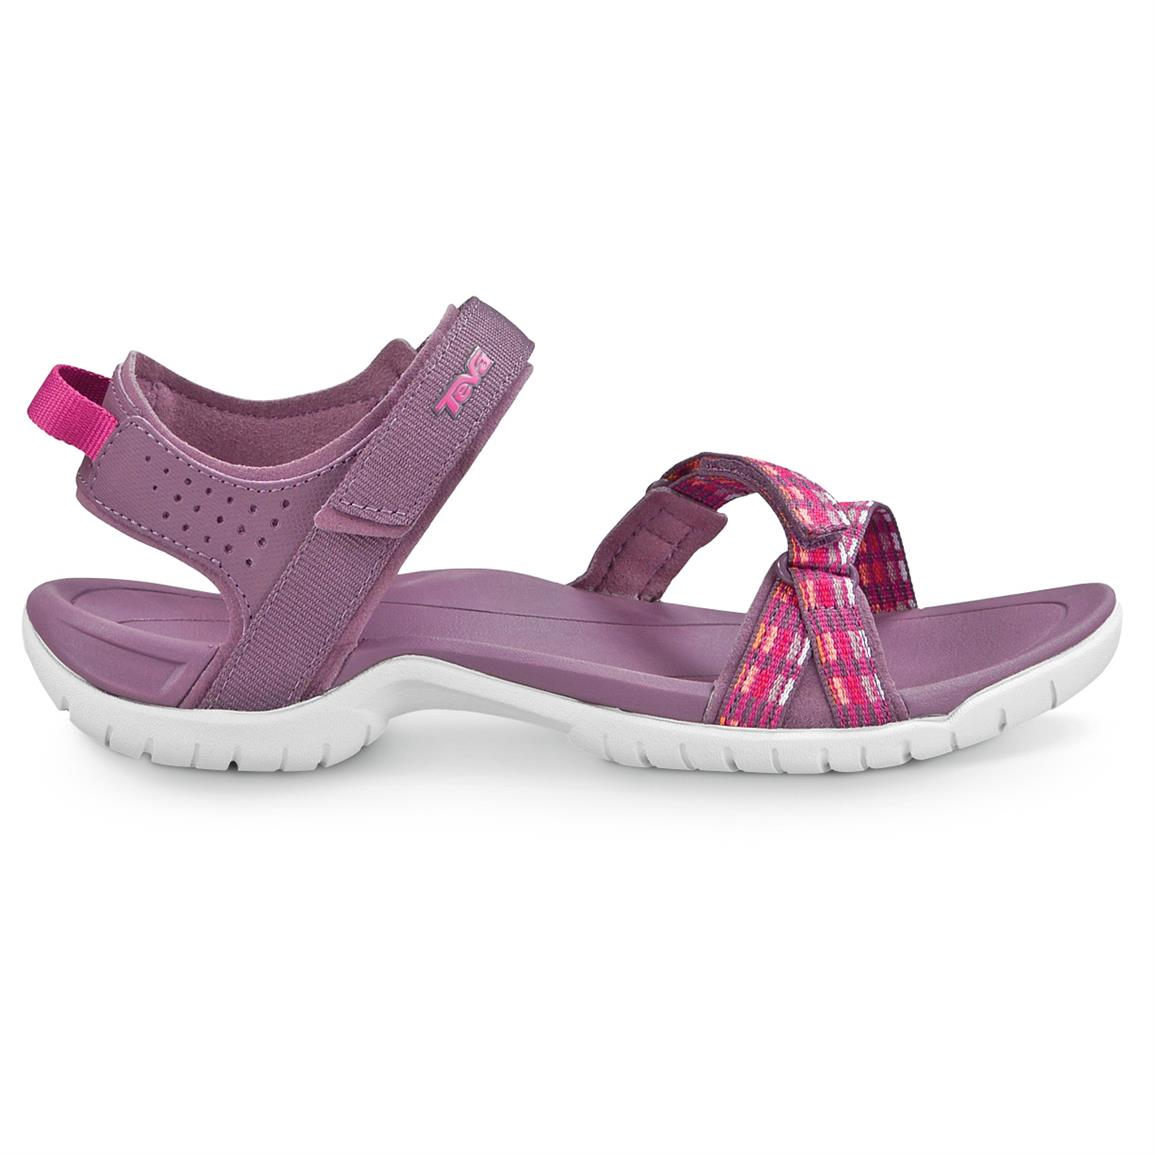 Teva Women's Verra Sport Sandals, Modern Strip